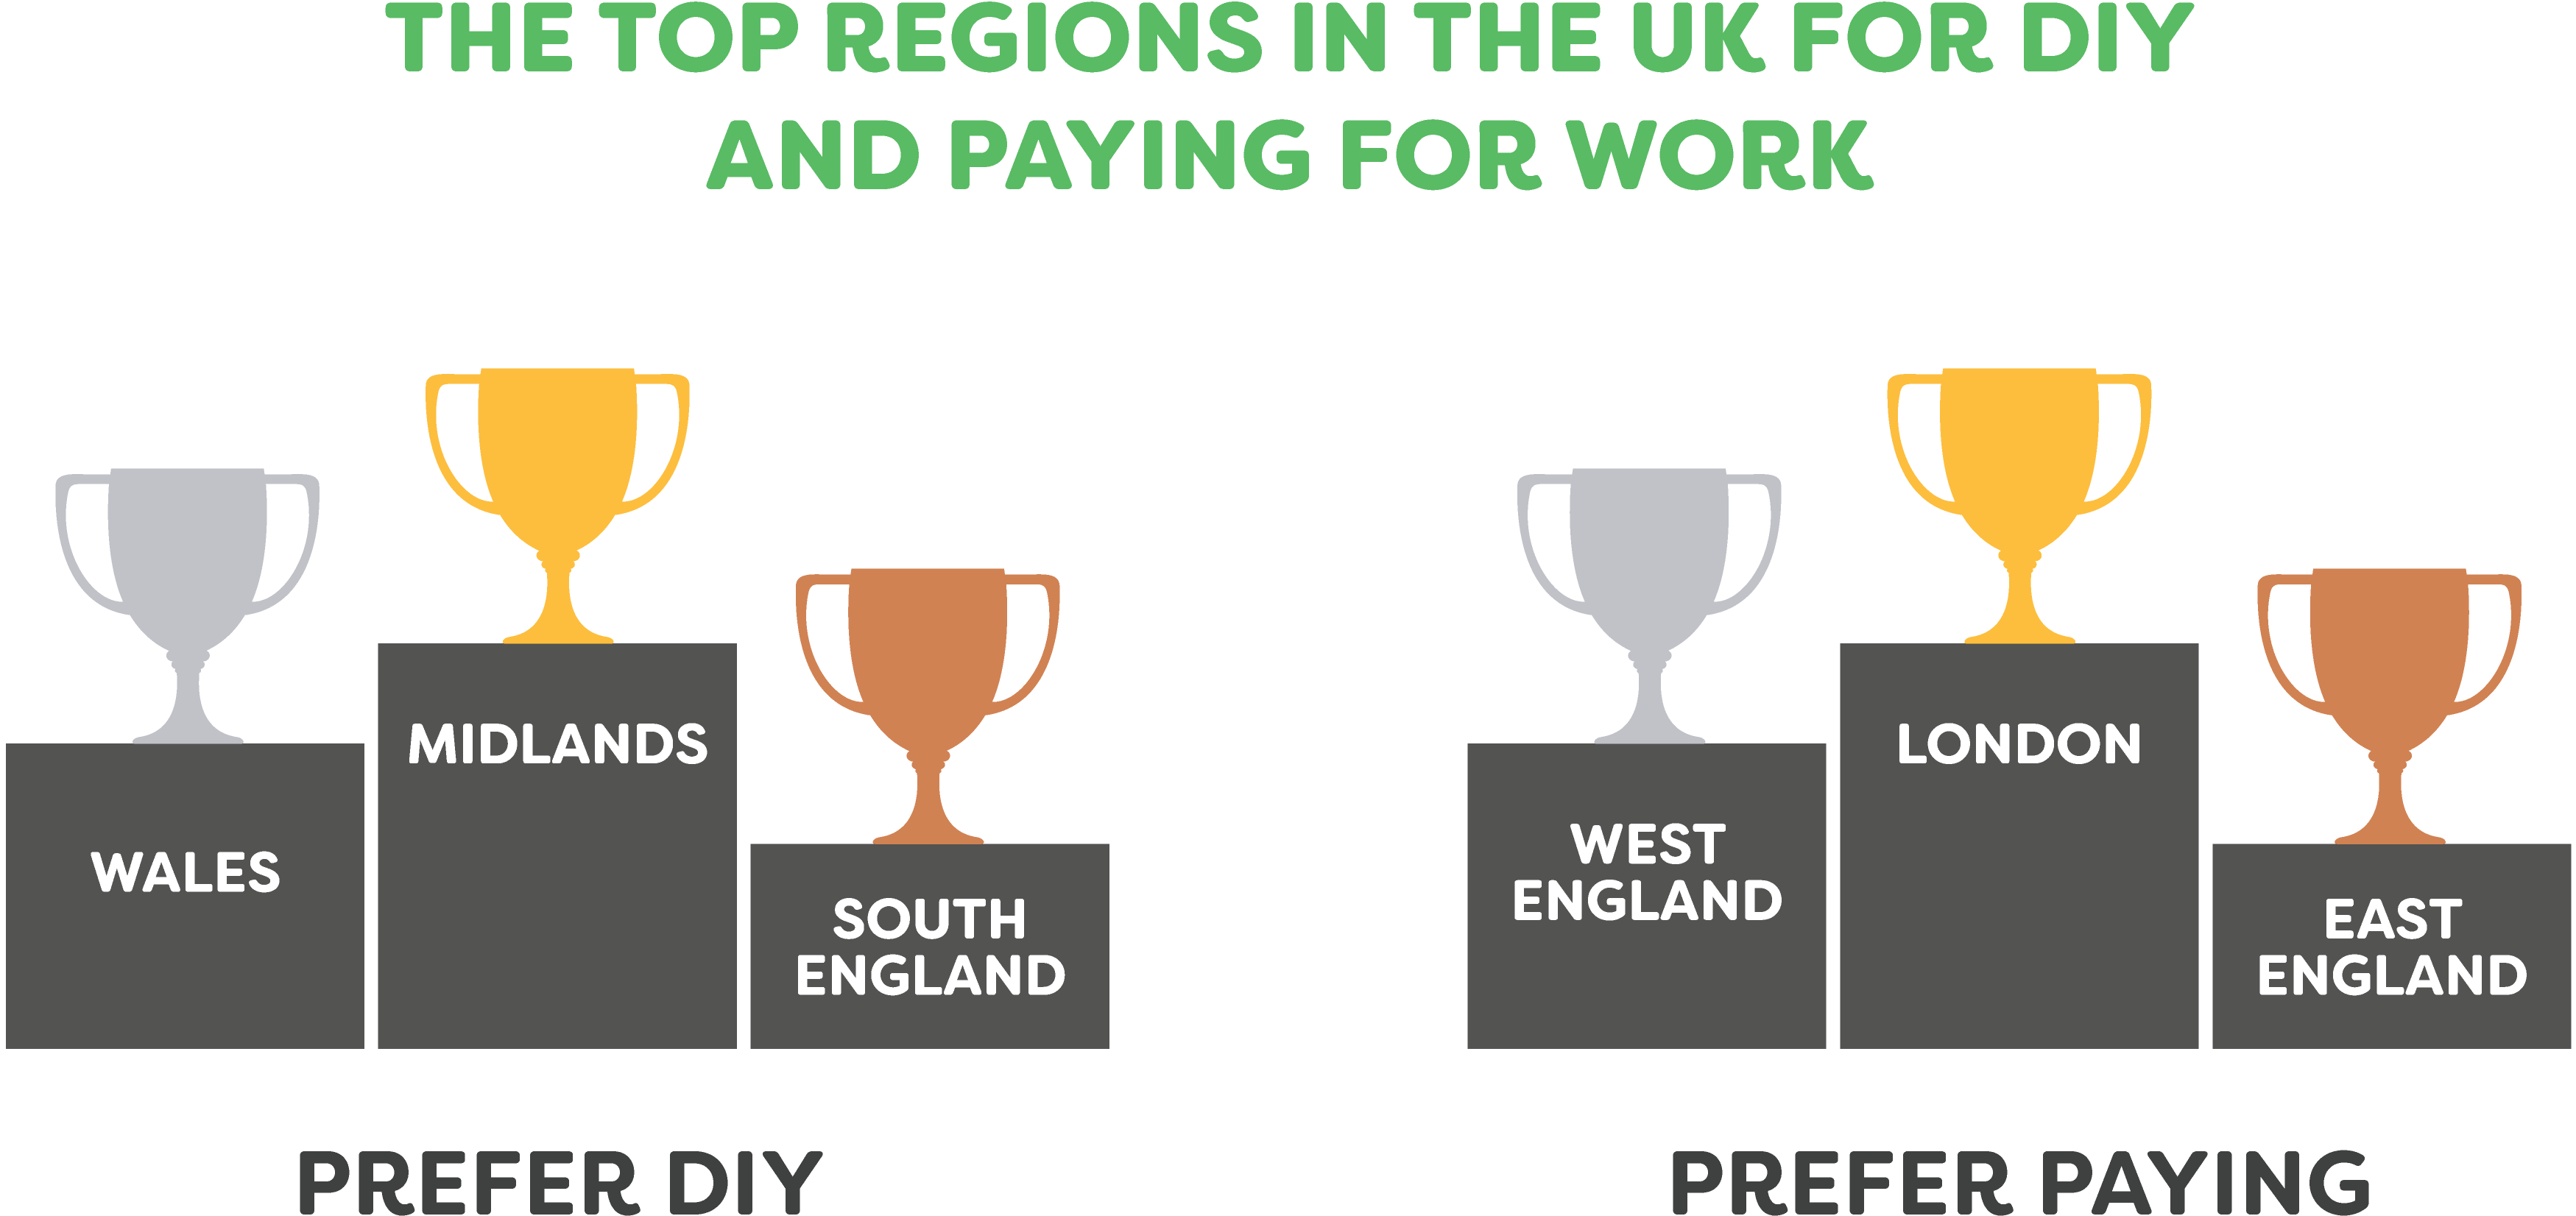 DIY? - The Top Regions in the UK for DIY and Paying for Work - When, What and DIY